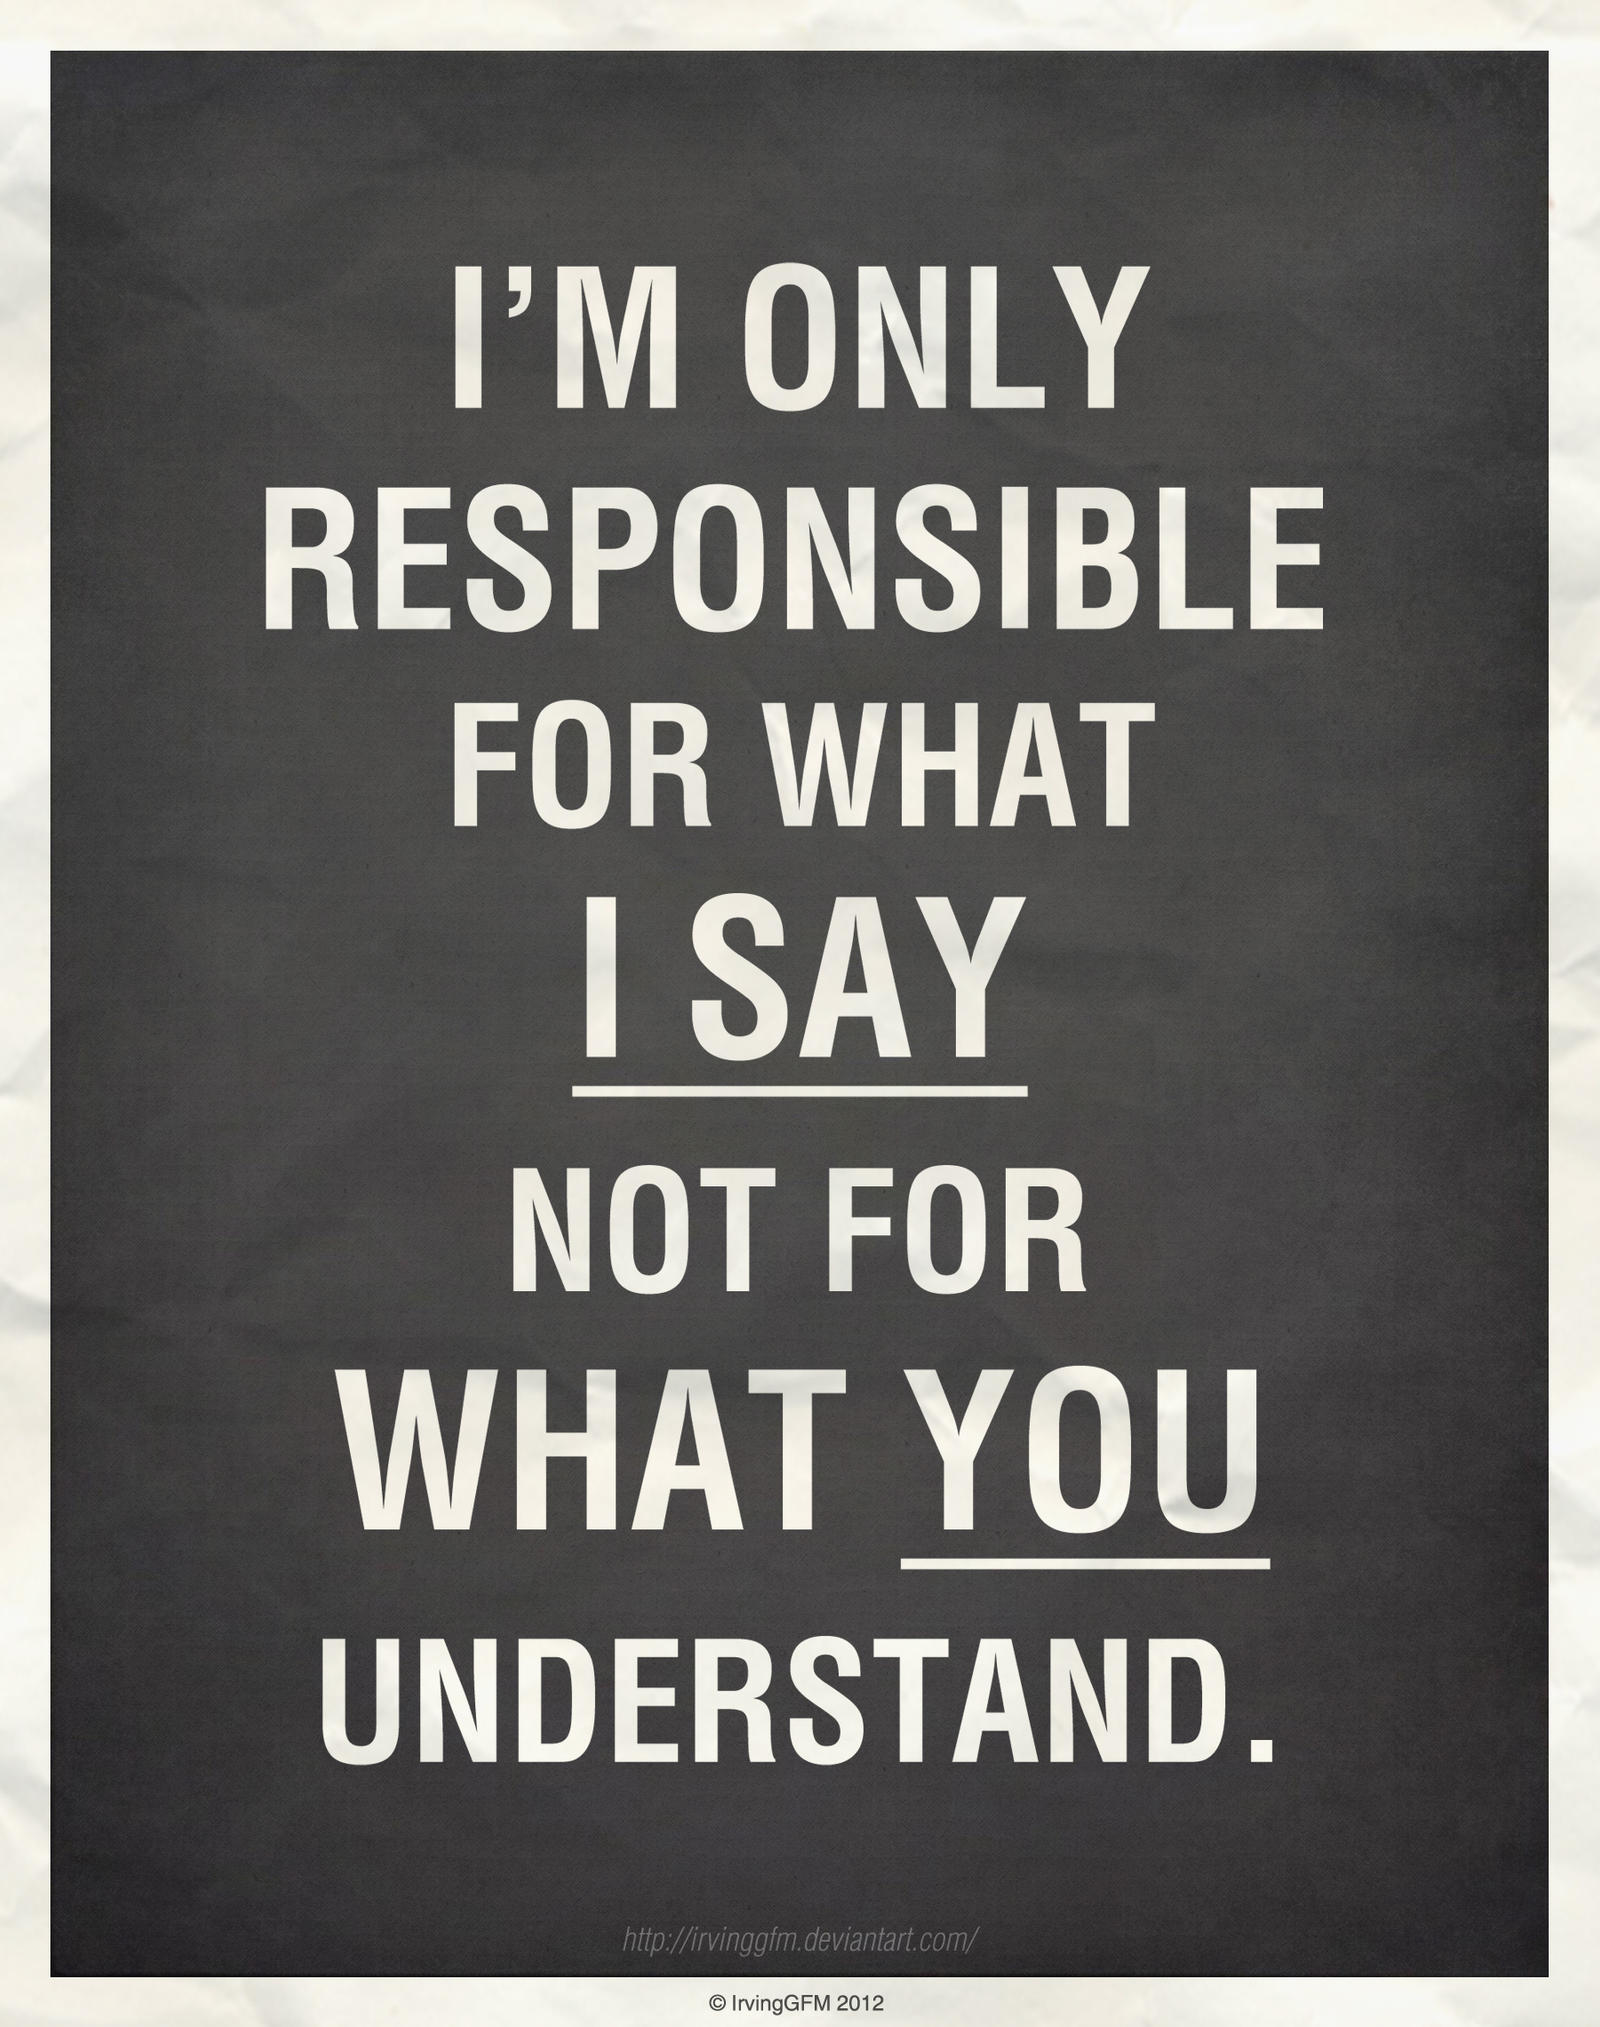 I'm Only Responsible for...